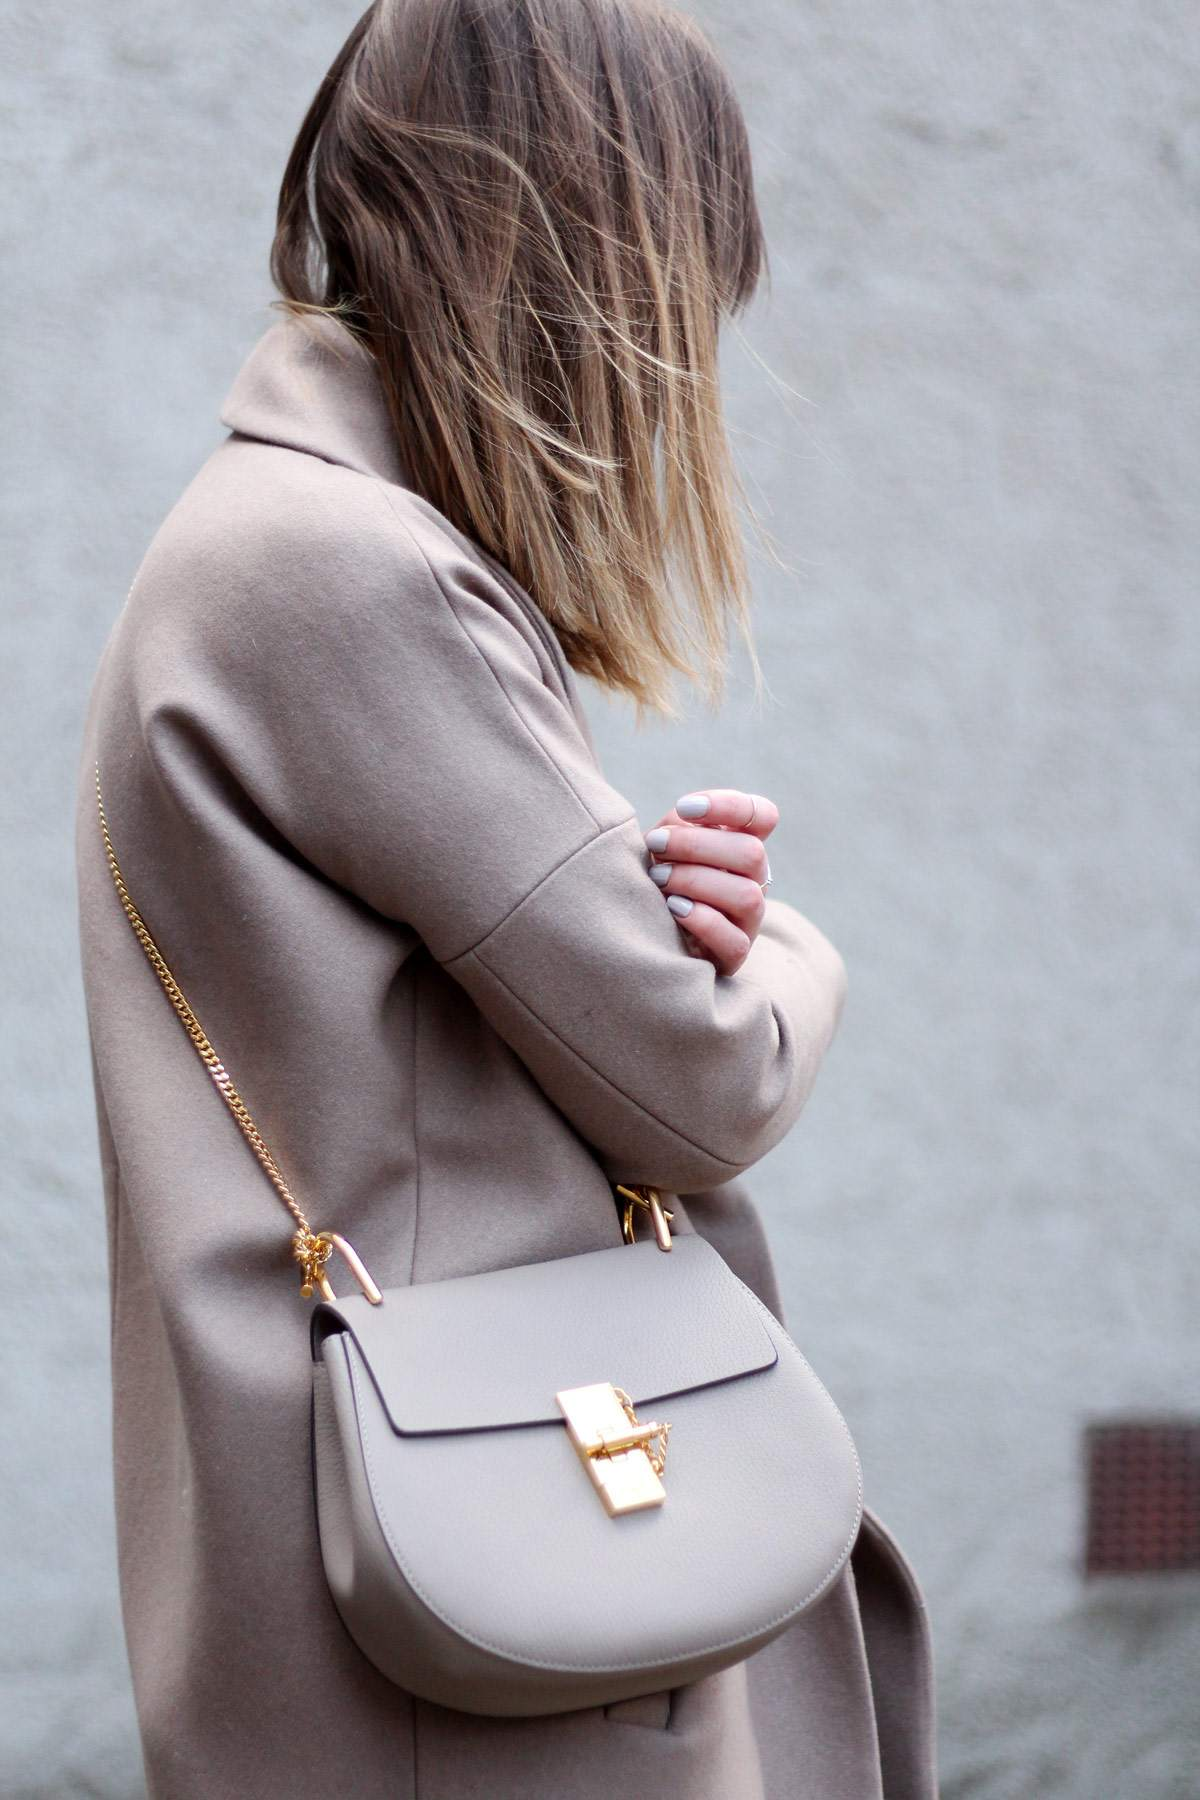 all-saints-ember-nesi-coat-chloe-drew-bag-motty-grey-small-isabel-marant-dicker-8